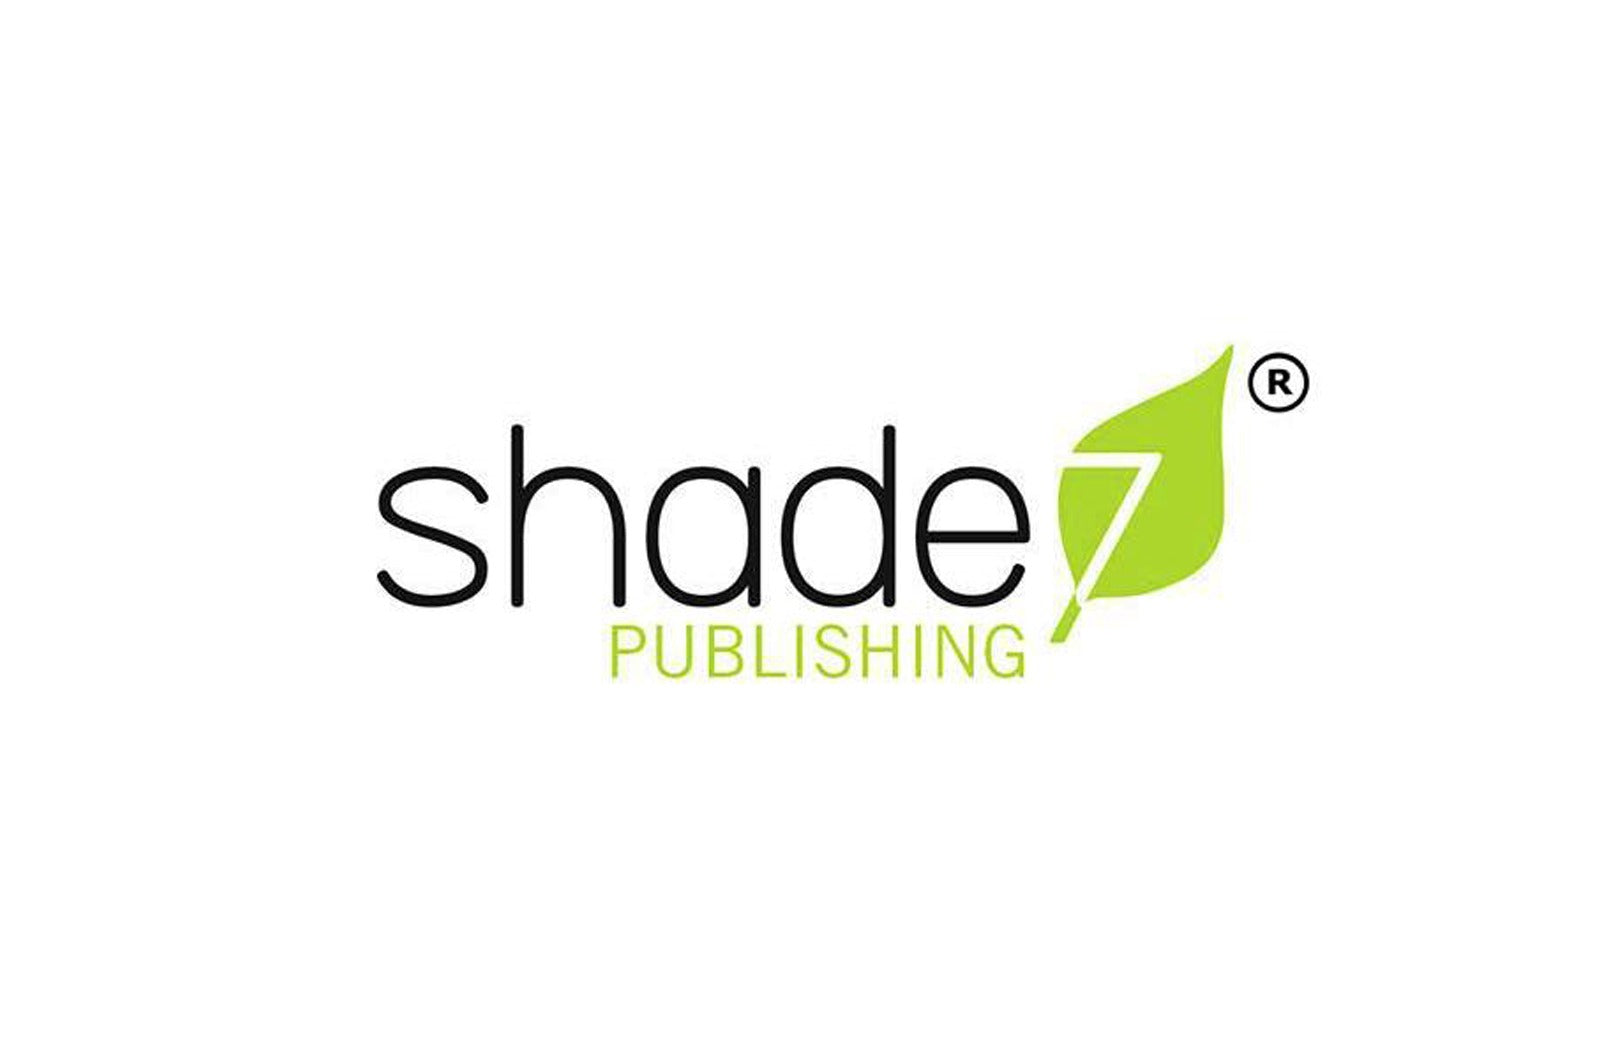 Shade 7  - The multilingual publishing company that produce pop up books on educational stories from the Quran